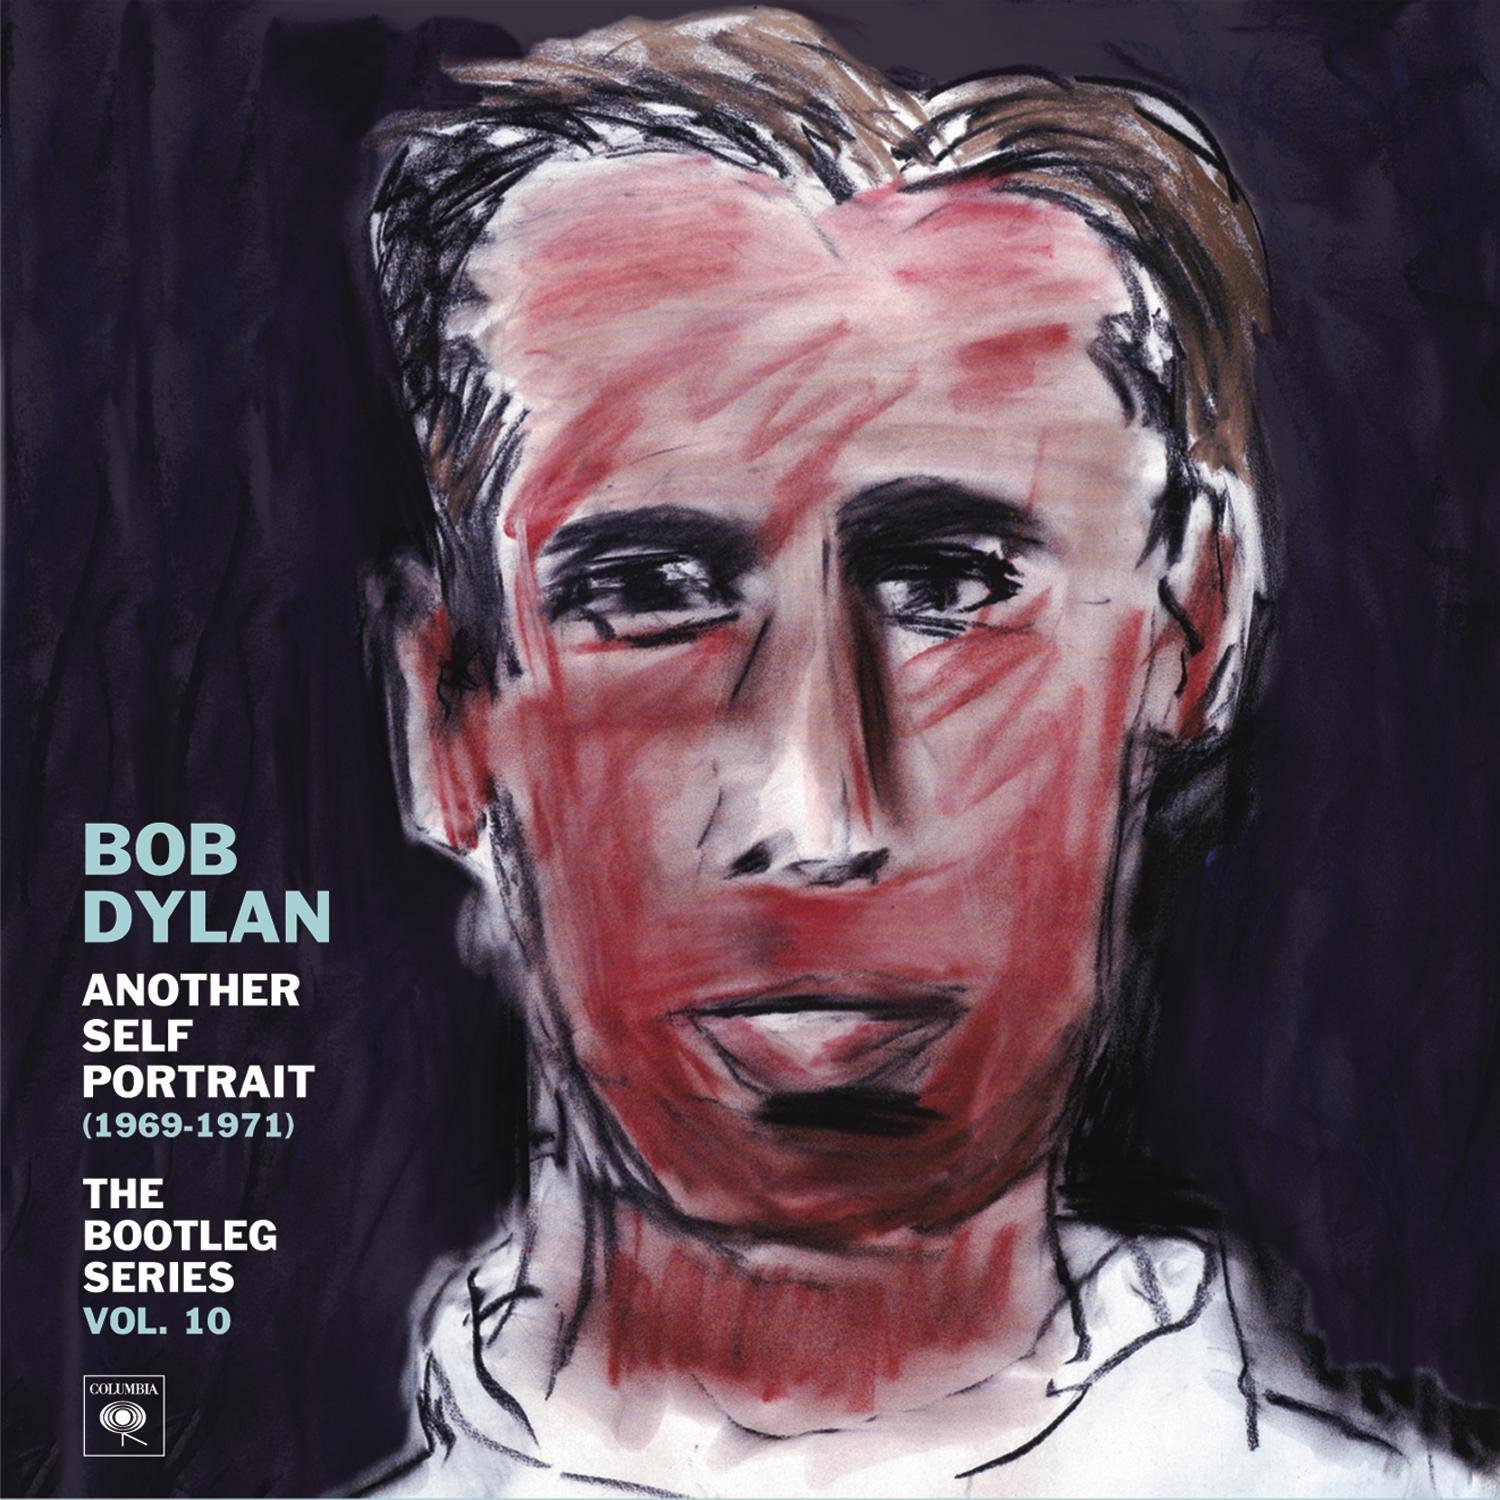 Bob Dylan - The Bootleg Series Vol. 10  Another Self Portrait (1969-1971) (2013) [FLAC] Download